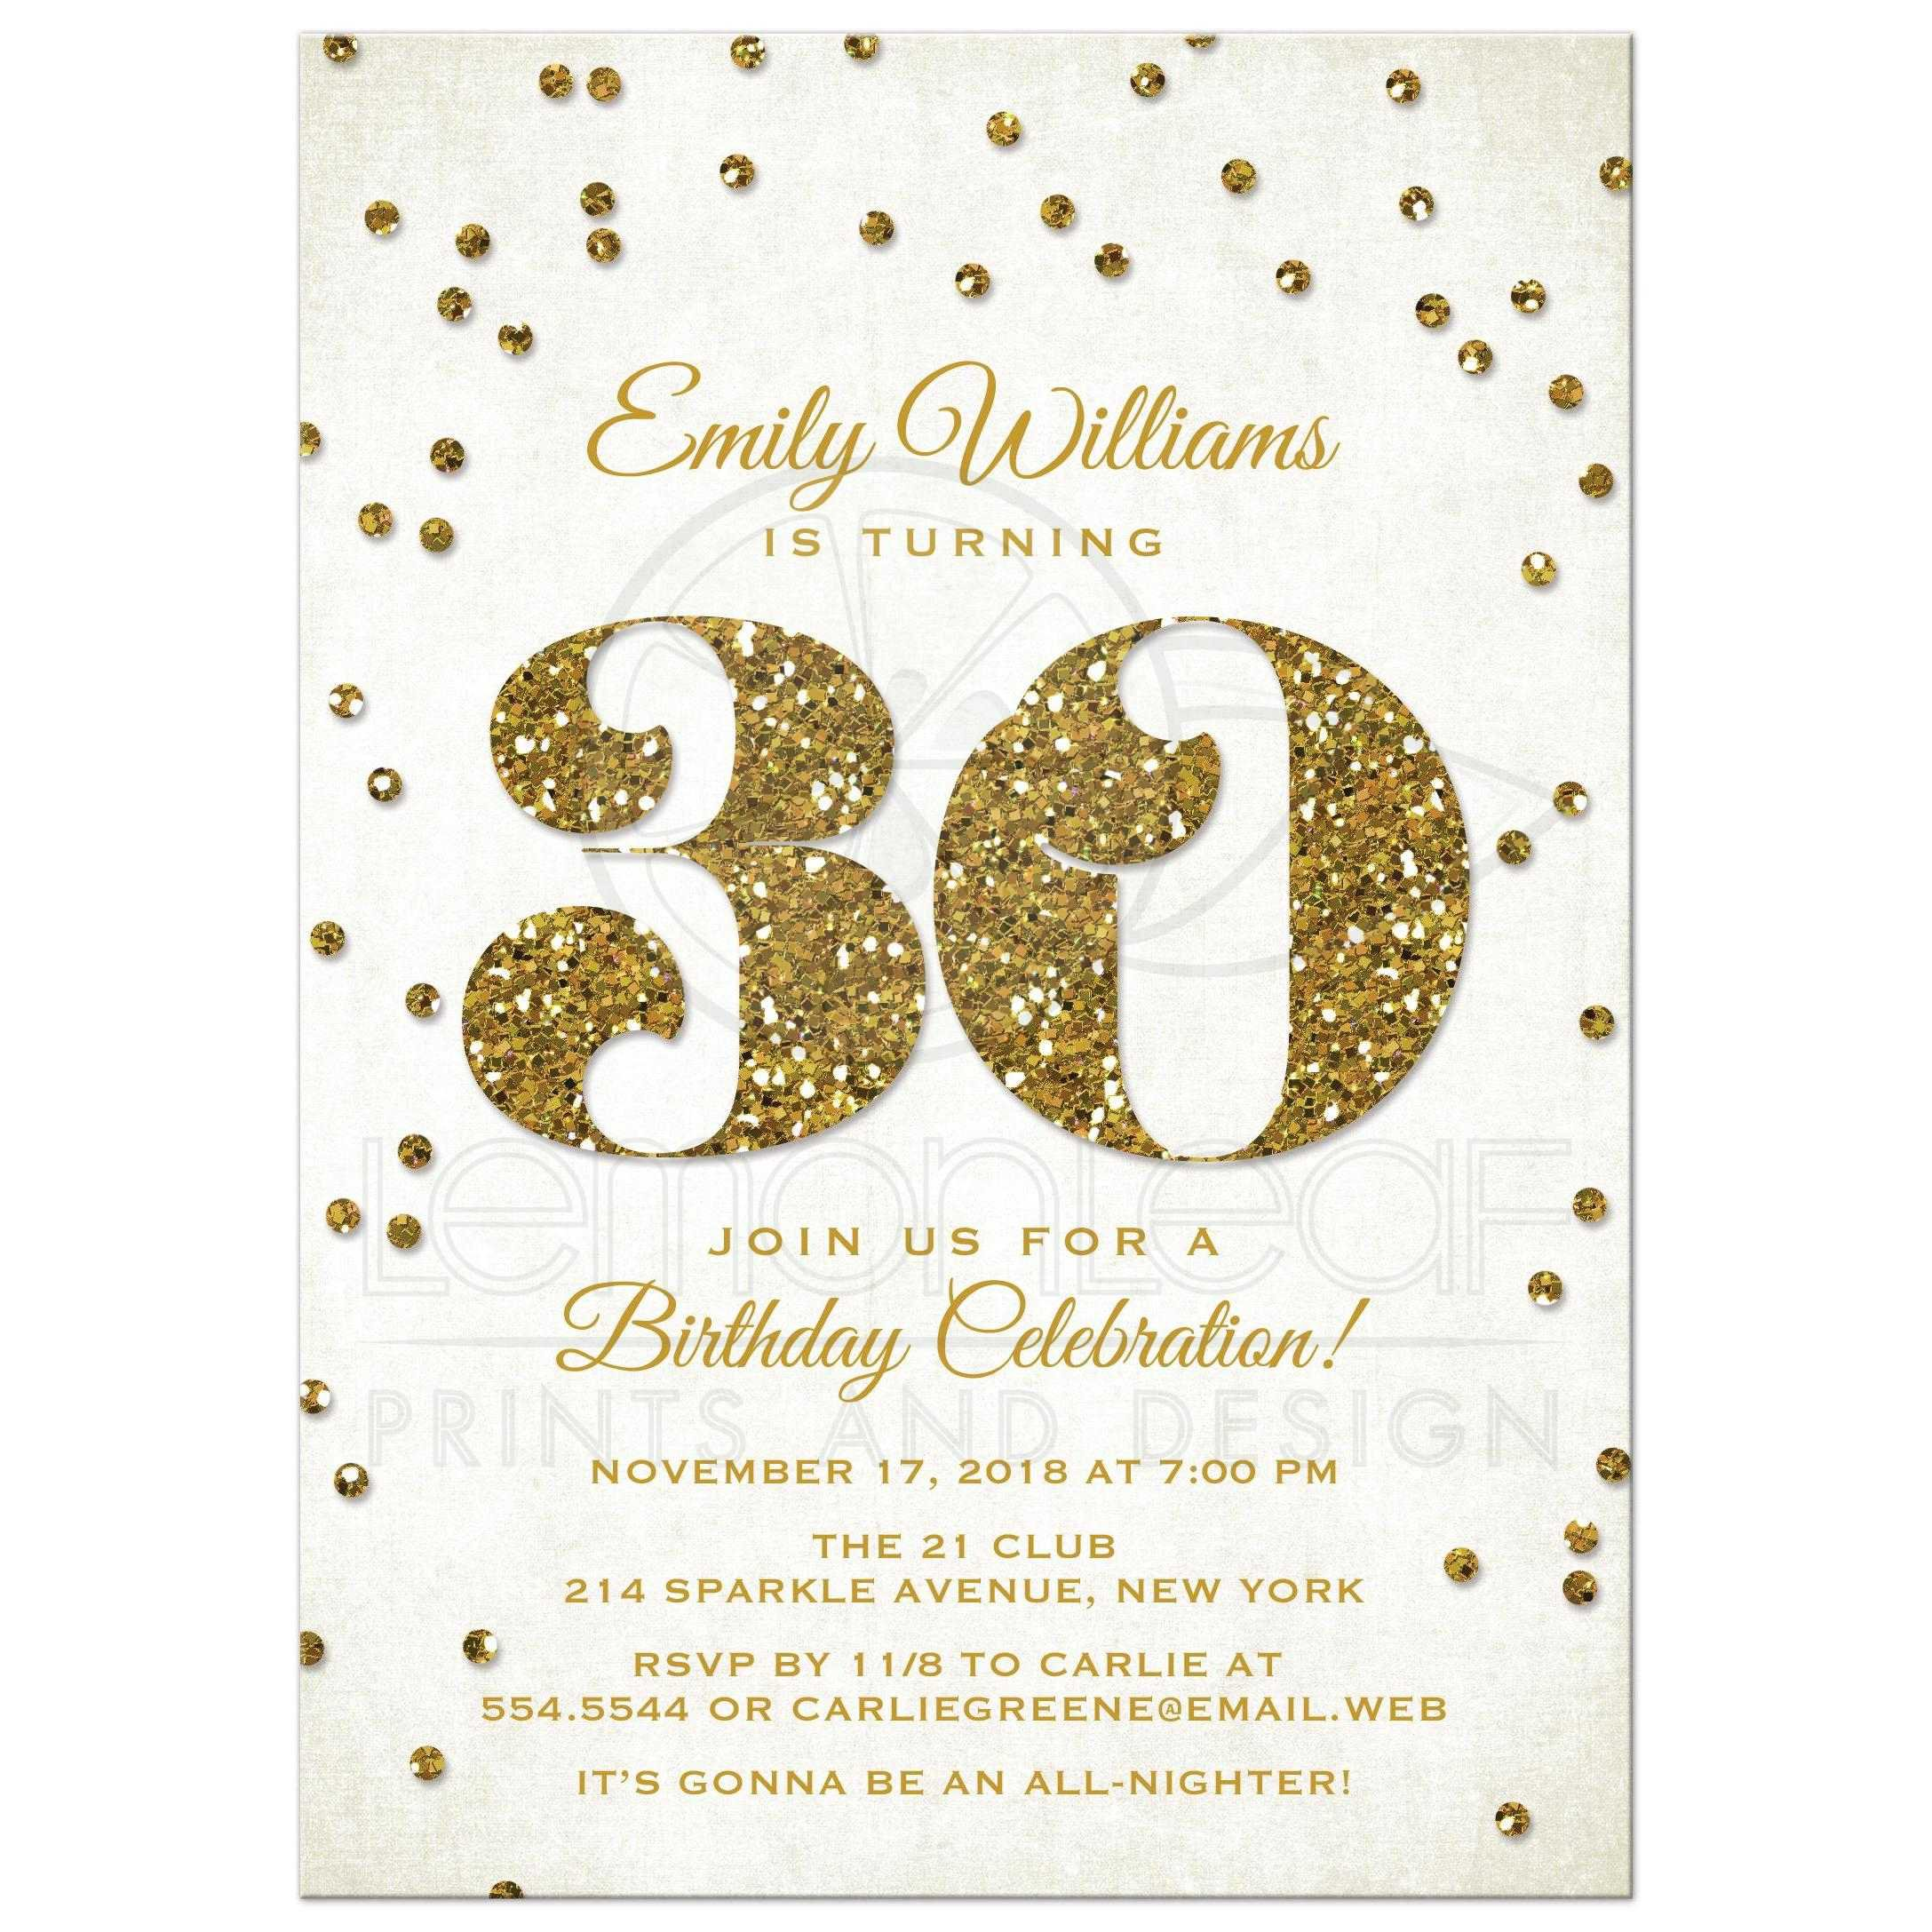 free birthday invitation templates ; 30th-birthday-invitations-templates-free-printable